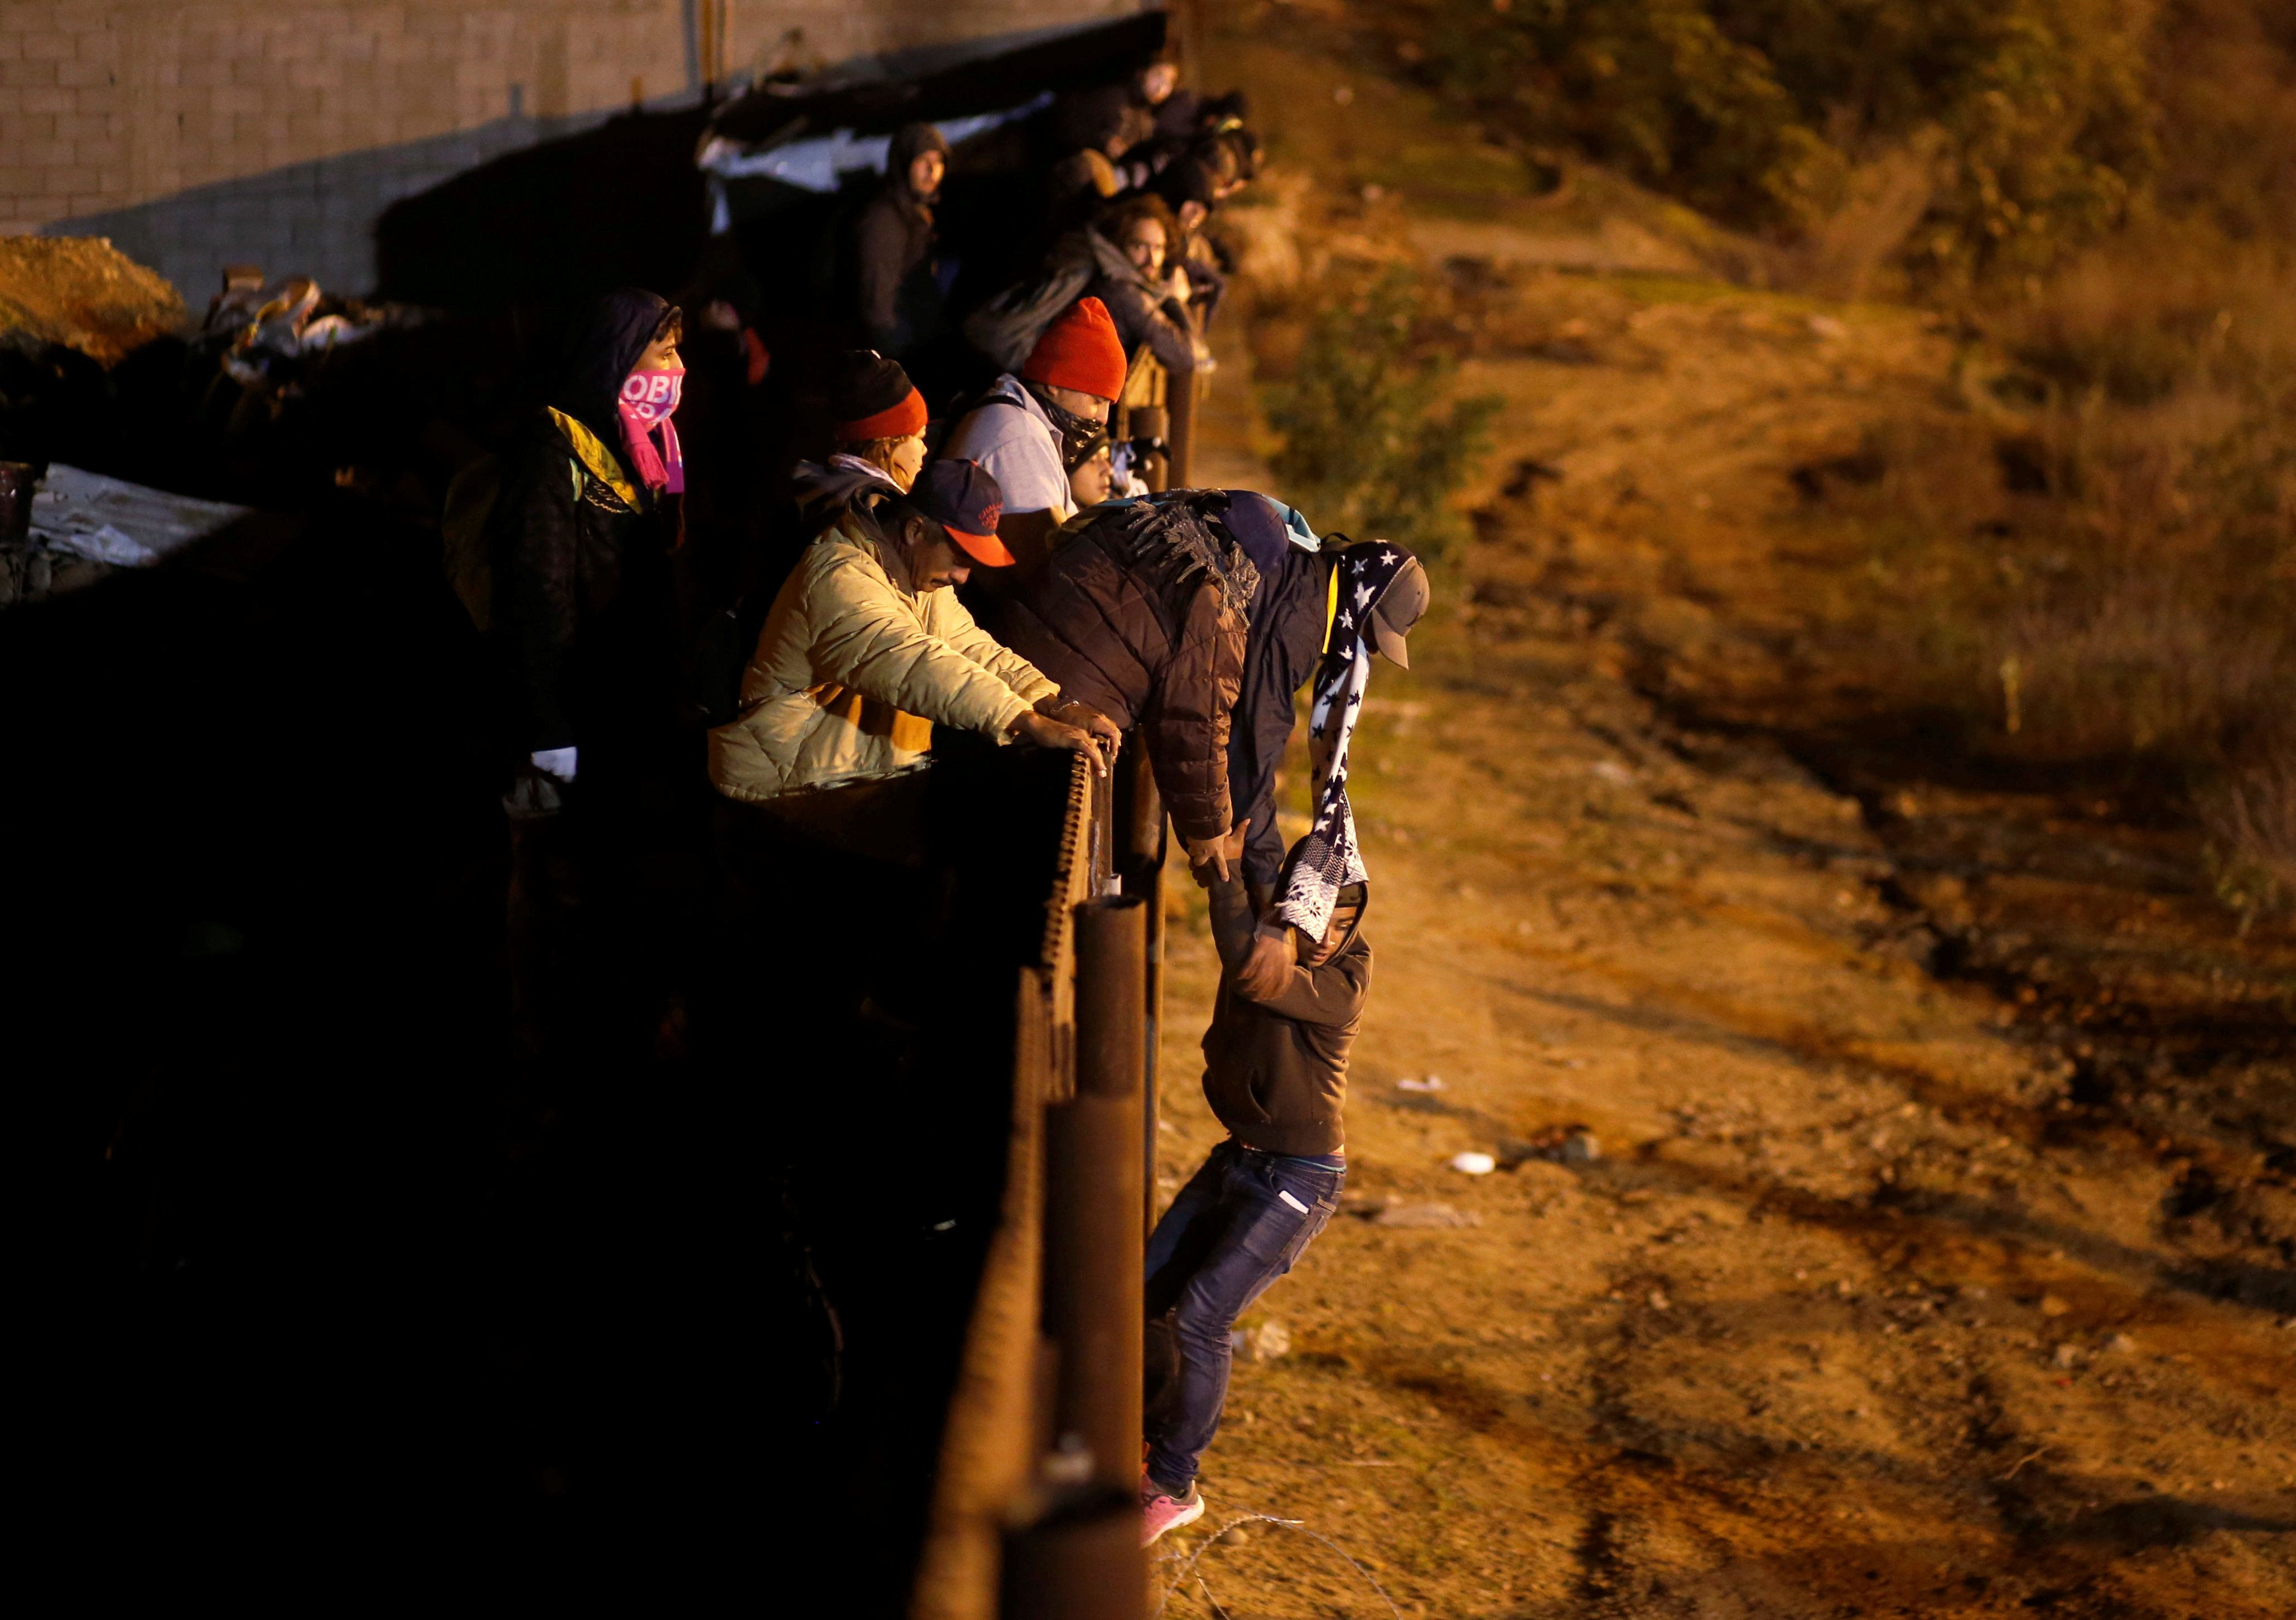 A migrant from Honduras, part of a caravan of thousands of Central Americans, jumps from the border fence to cross into the U